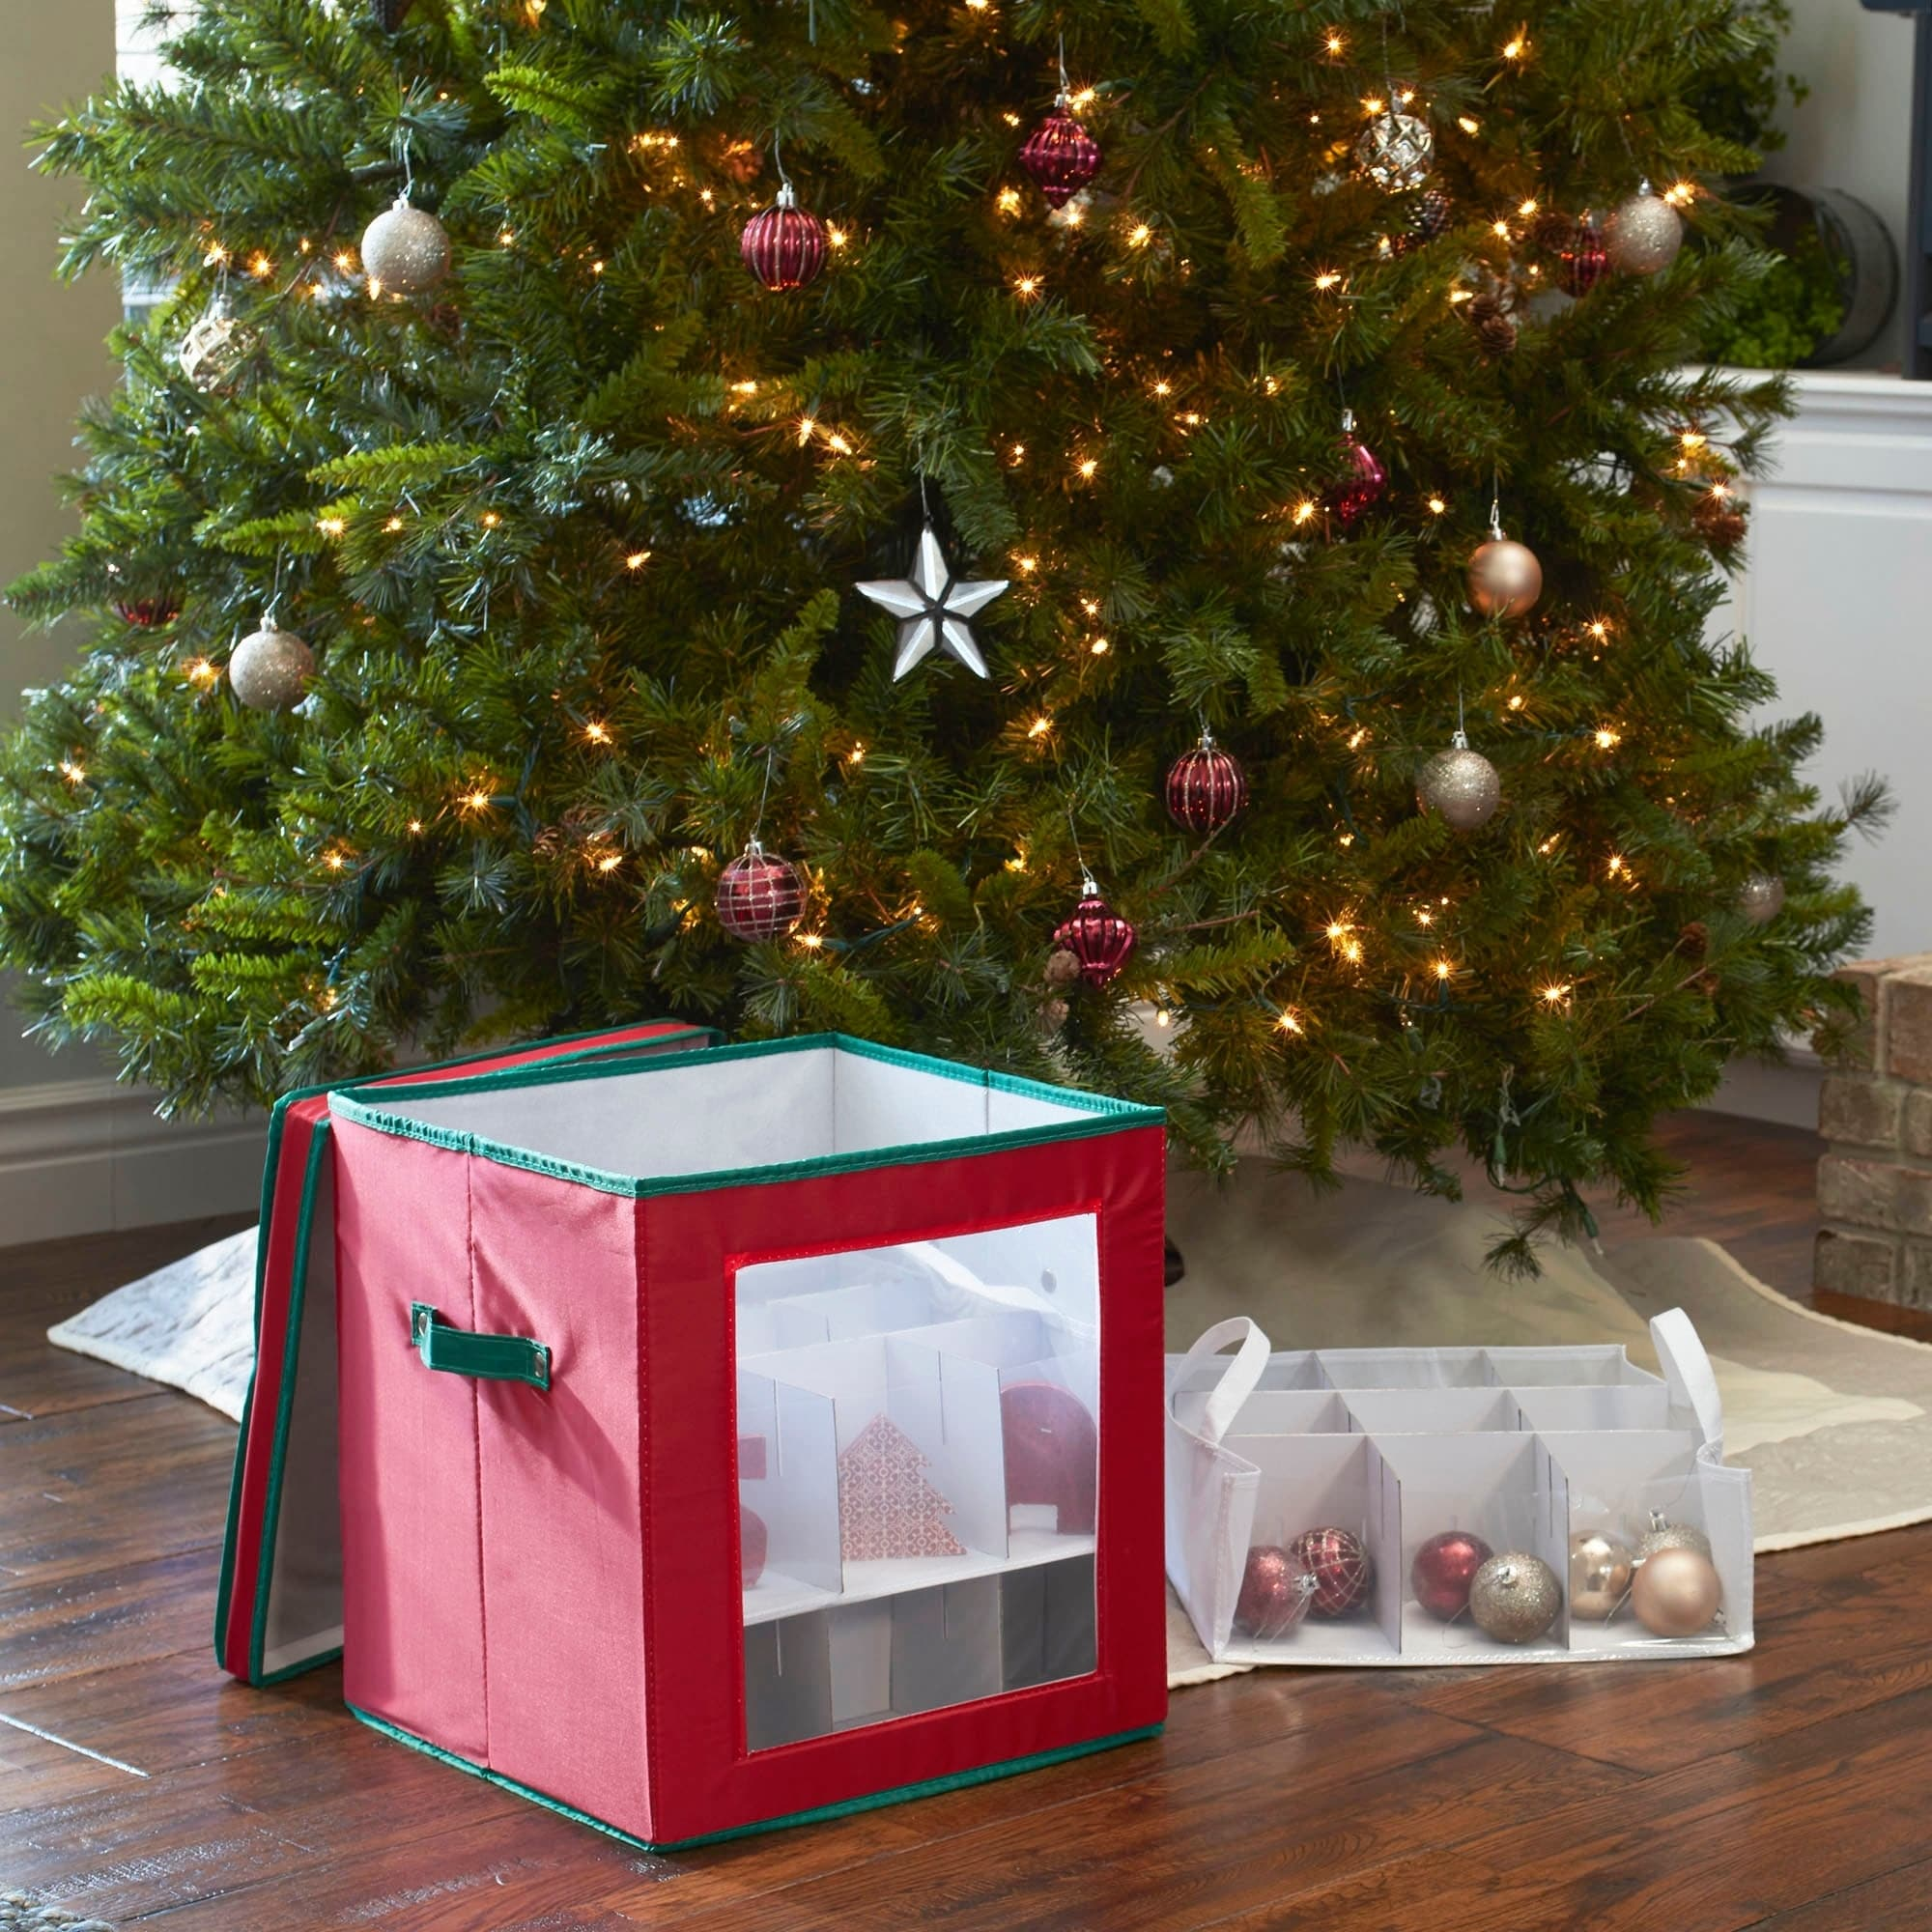 Christmas Ornament Storage.Household Essentials Medium Christmas Tree Ornament Storage Box For 27 Xmas Ornaments Red Bin W Green Trim